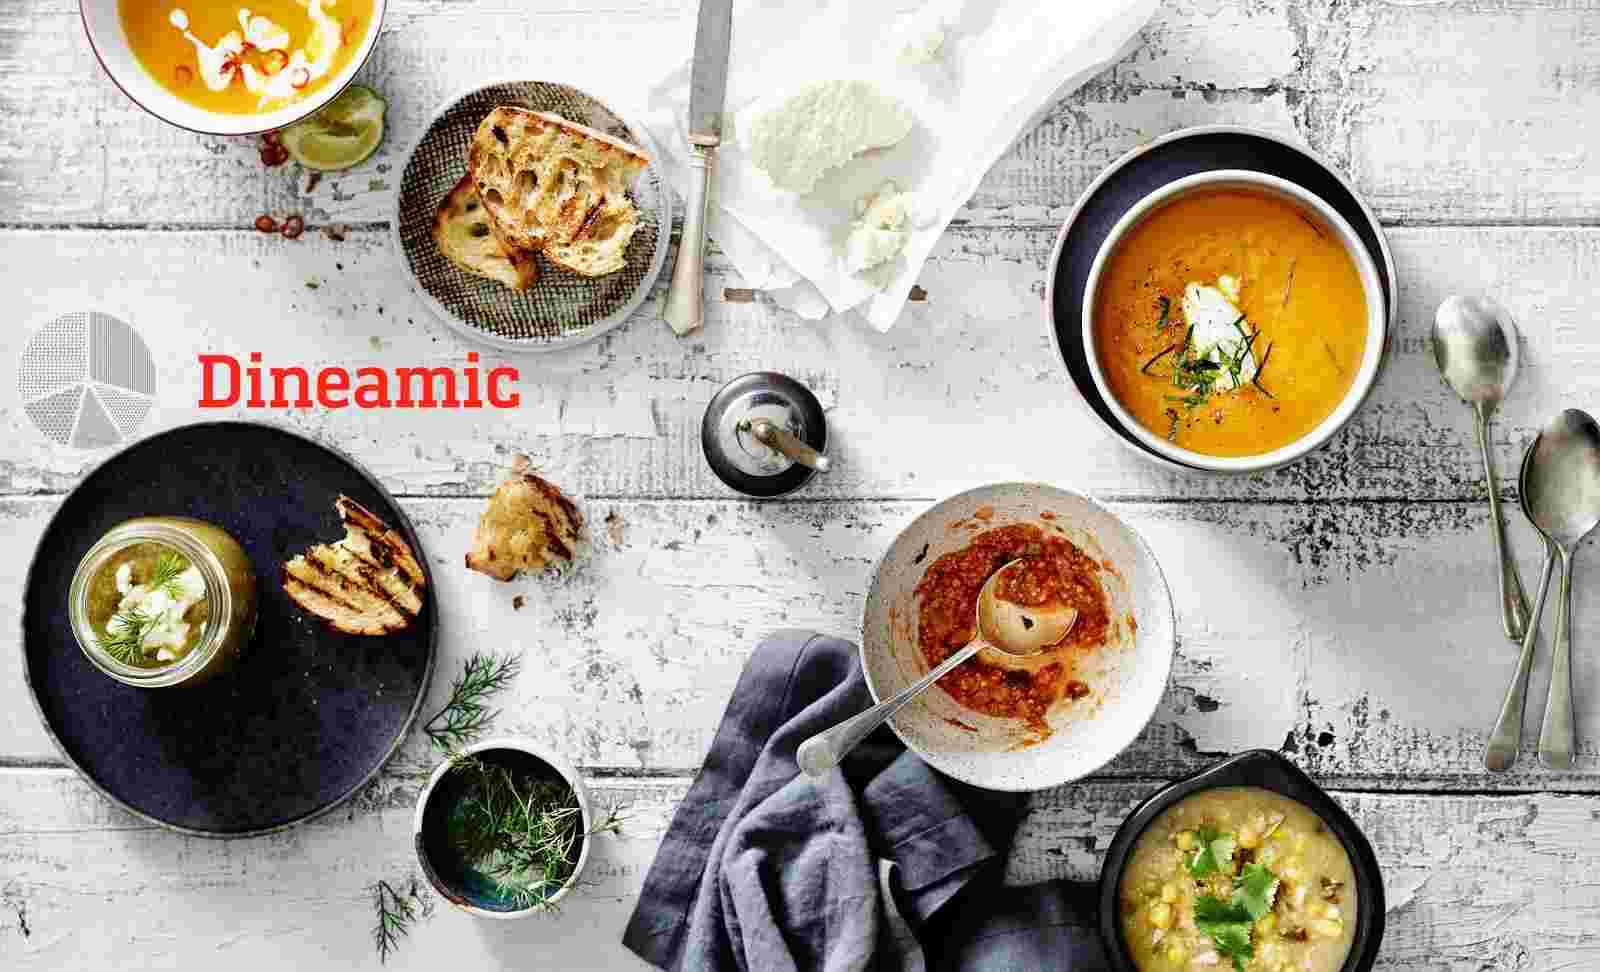 Dineamic Delivers: Doing Away With Daily Dilemmas